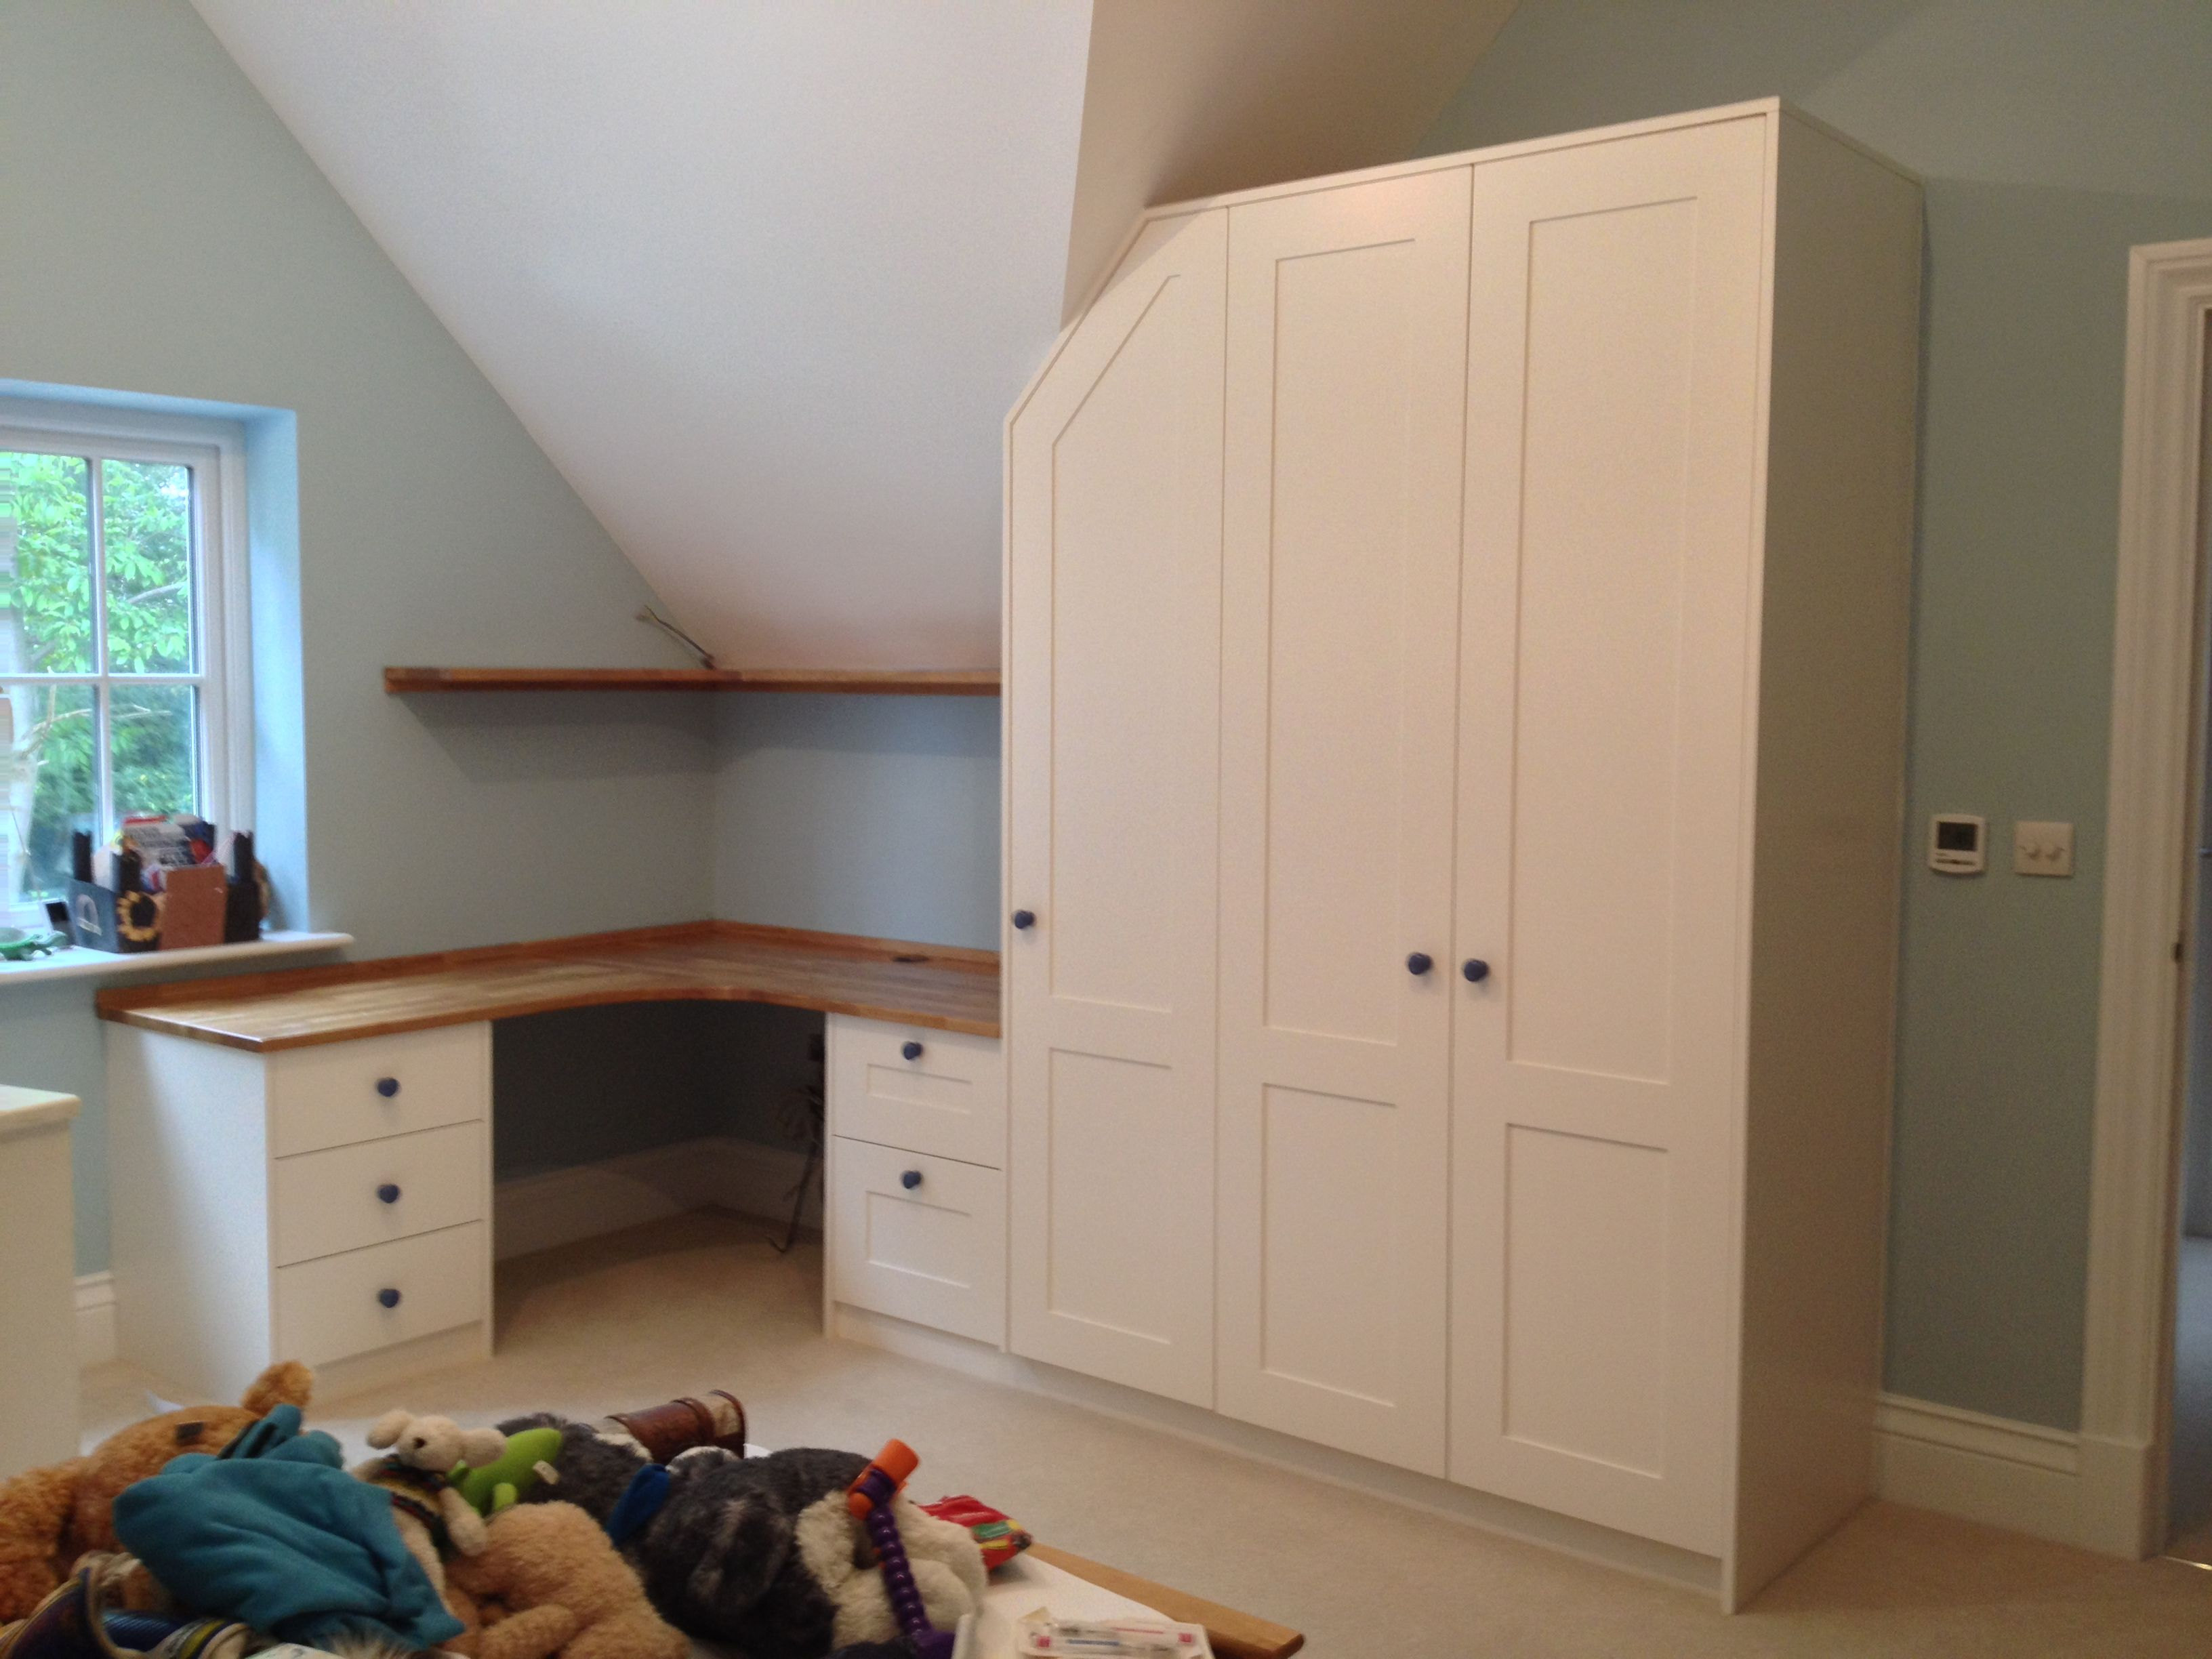 Bedroom Set With Custom Wardrobe Desk And Drawers Bespoke Design By Anthony Mullan Furniture